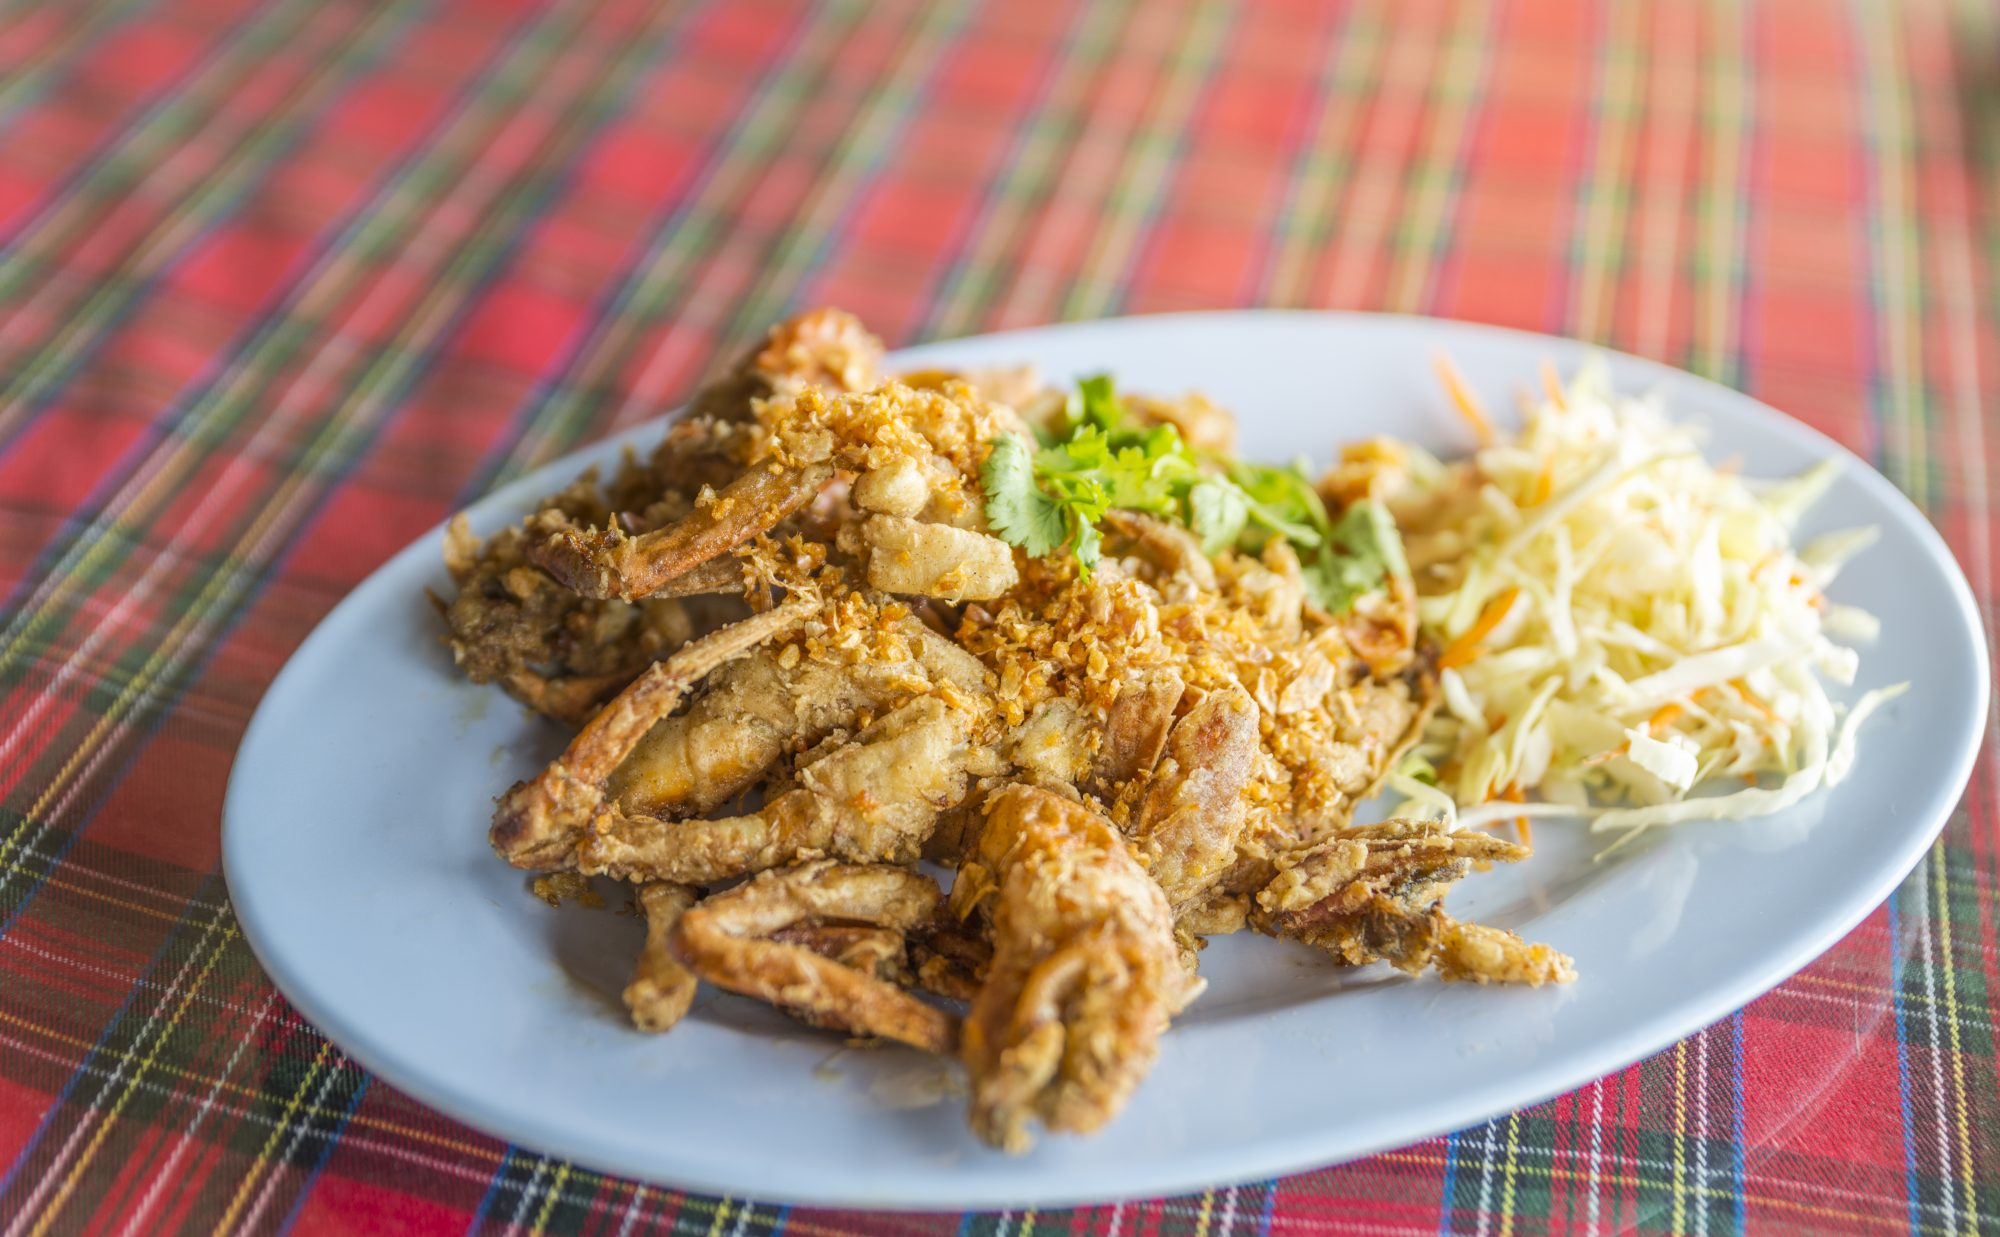 Where to buy soft-shell crab online